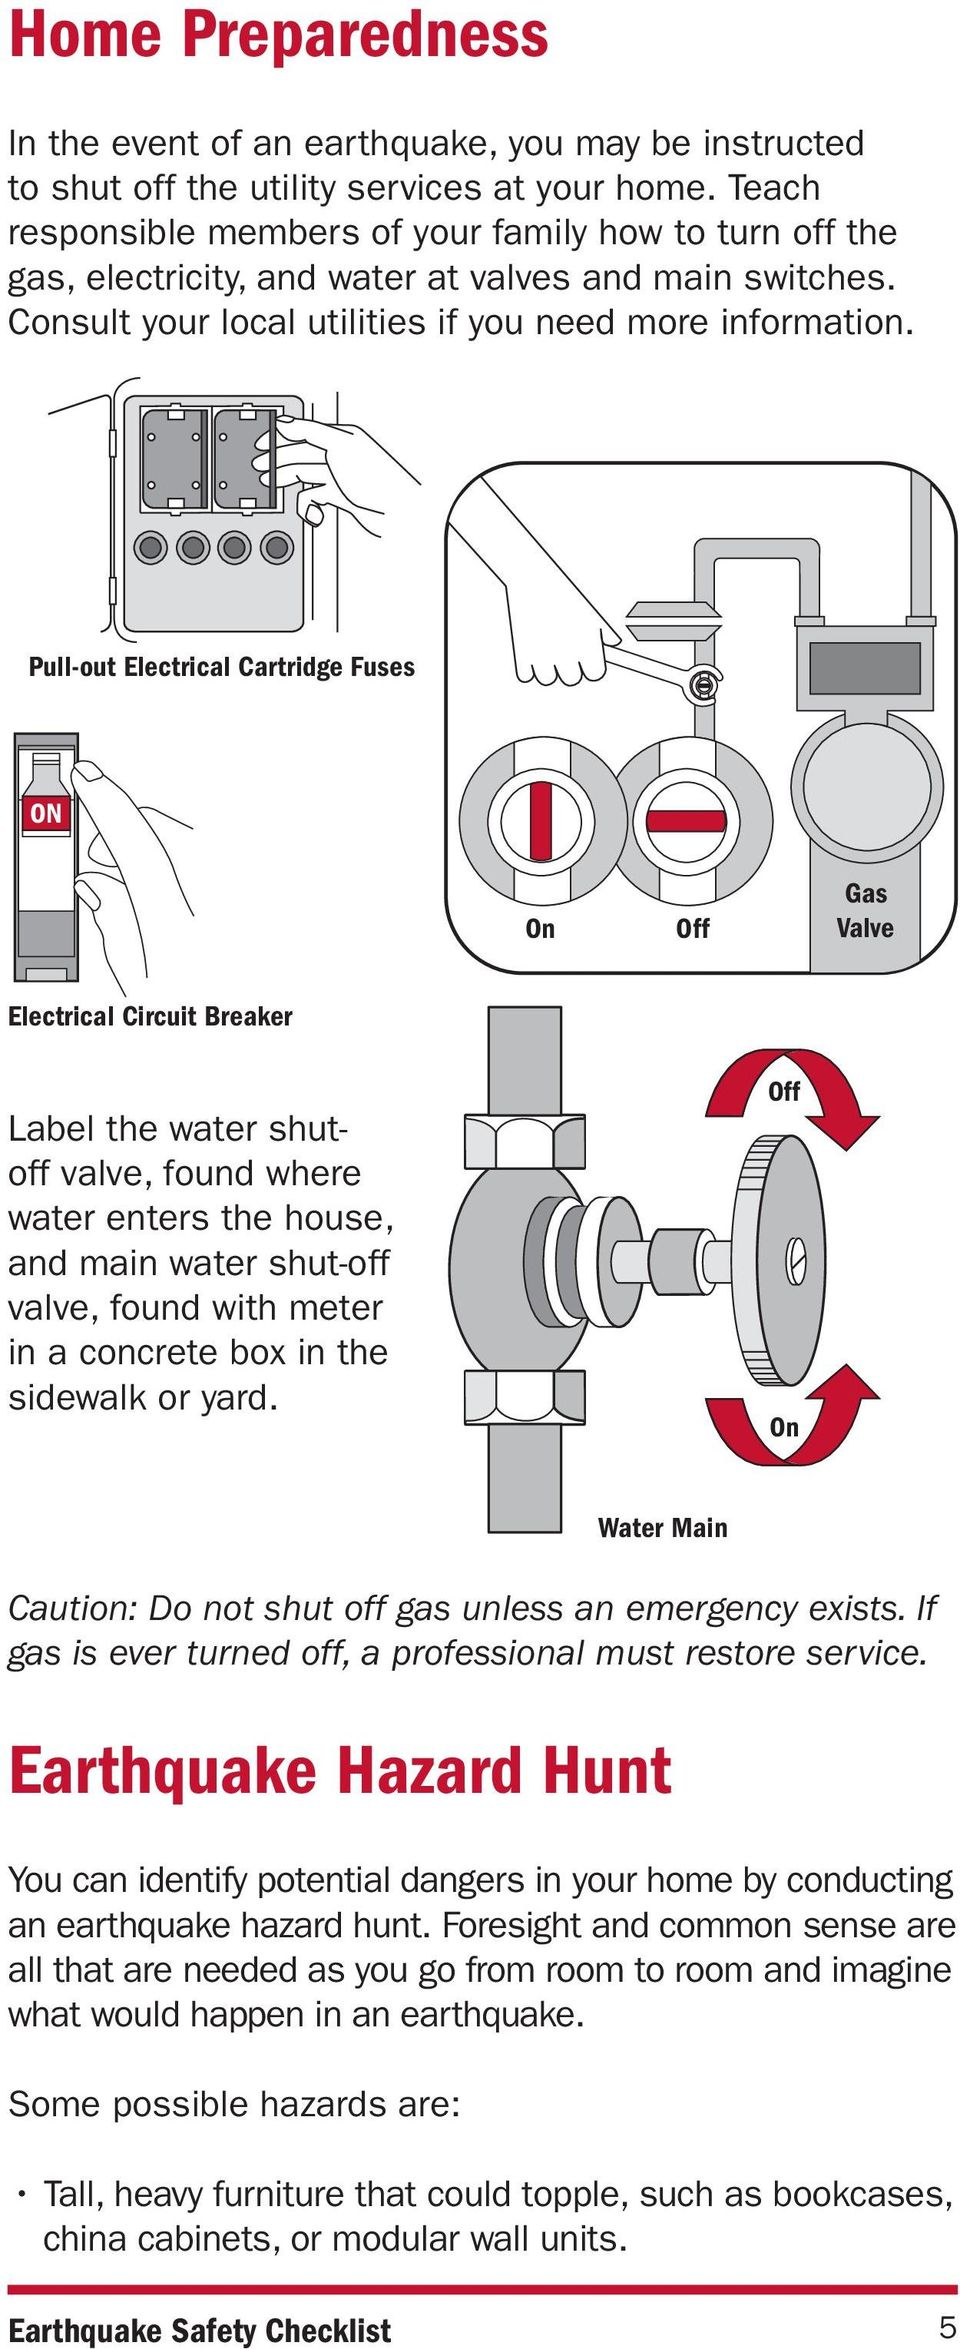 Pull-out Electrical Cartridge Fuses ON On Off Gas Valve Electrical Circuit Breaker Label the water shutoff valve, found where water enters the house, and main water shut-off valve, found with meter